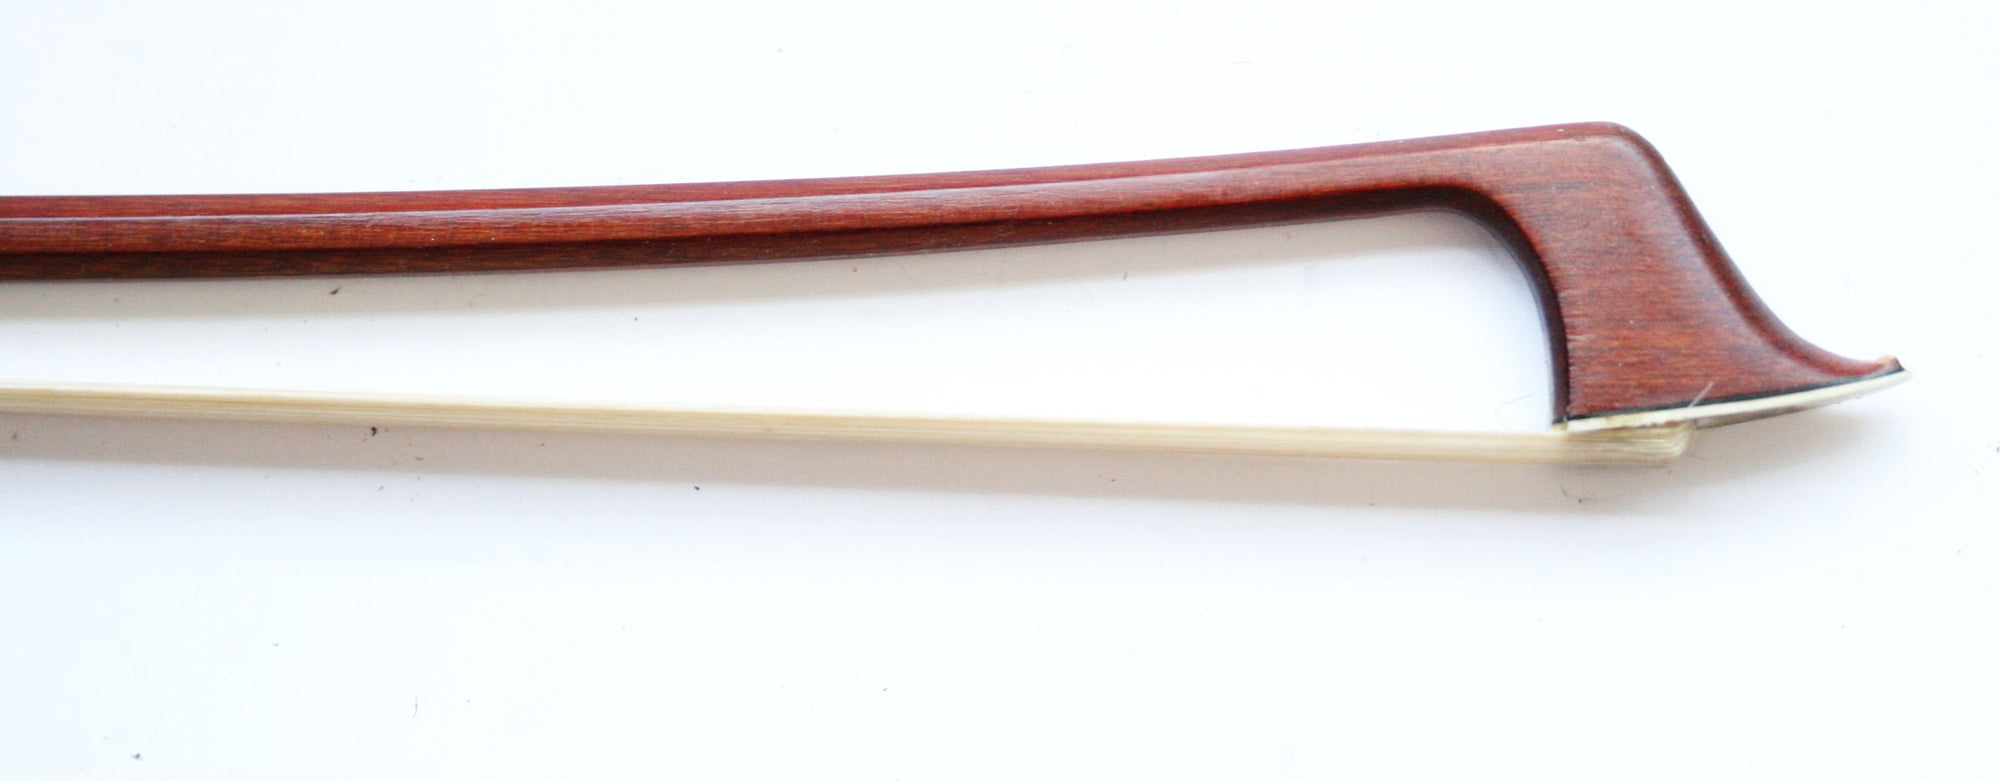 Cello bow by Emil Werner